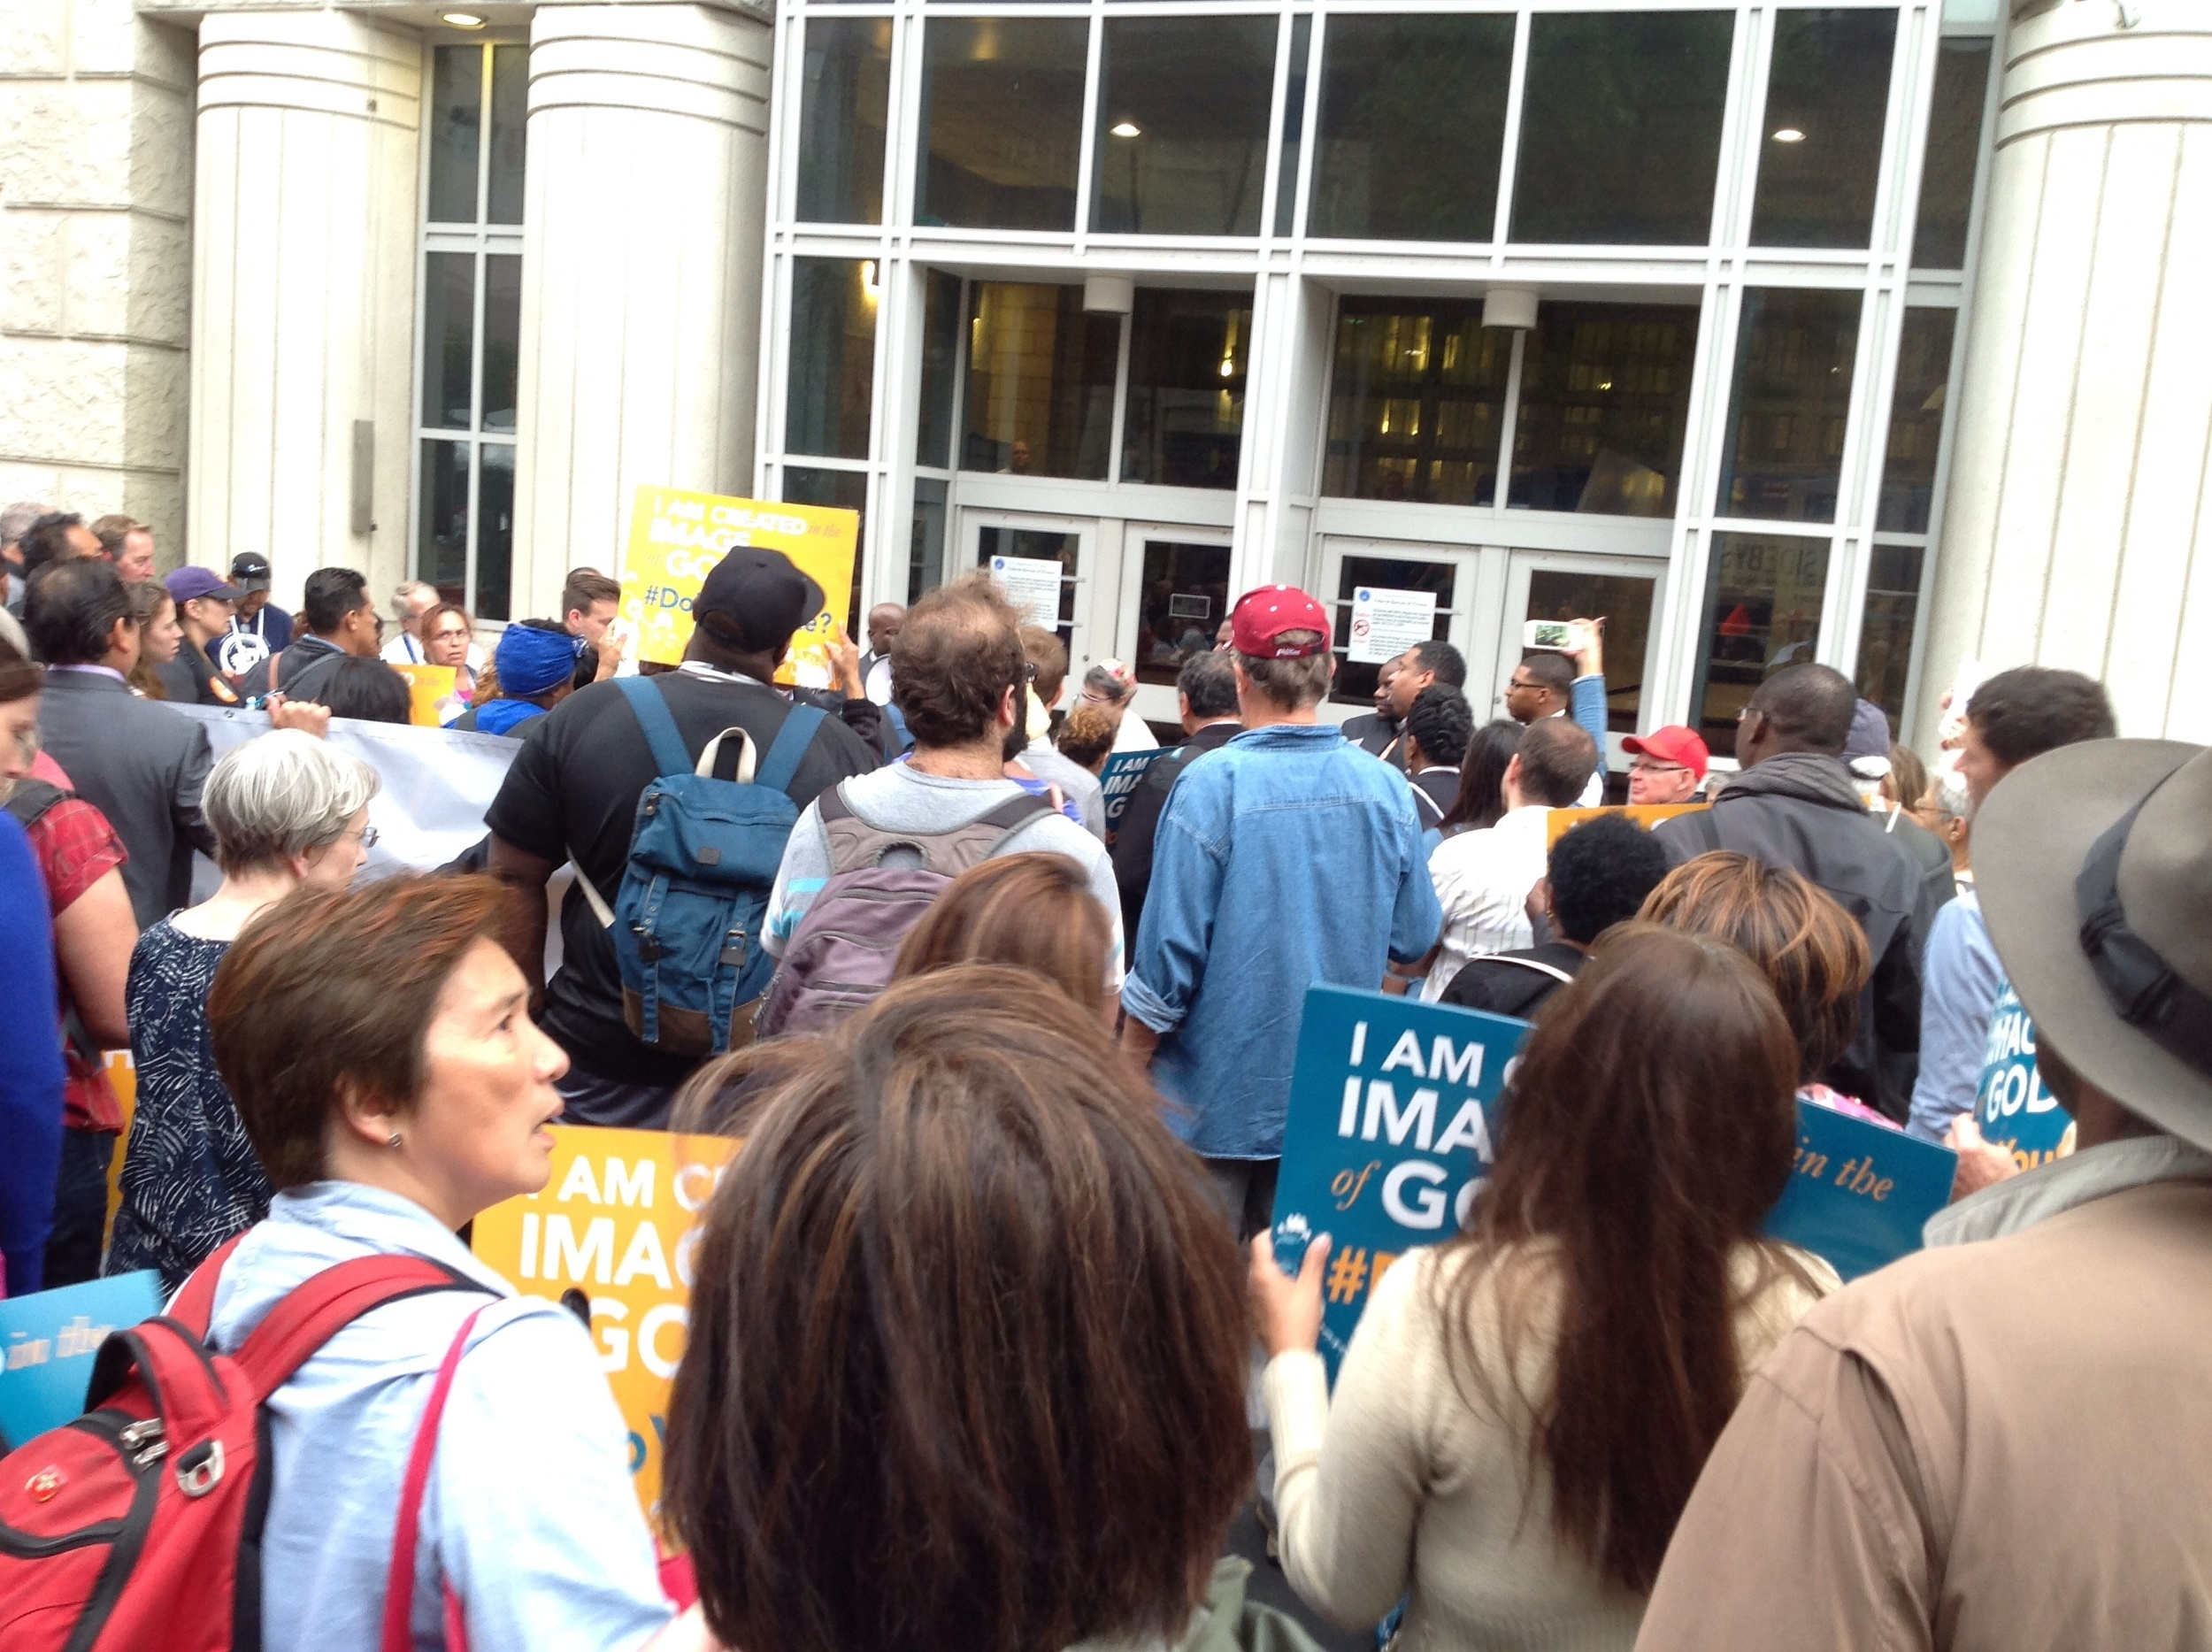 """Second stop along our march where individuals inside the federal detention building were awaiting deportation, saw and heard us chanting """"Do you see me?"""" and responded by tapping on the windows, at which we responded - """"We see you!"""" """"We see you!""""   Powerful!"""